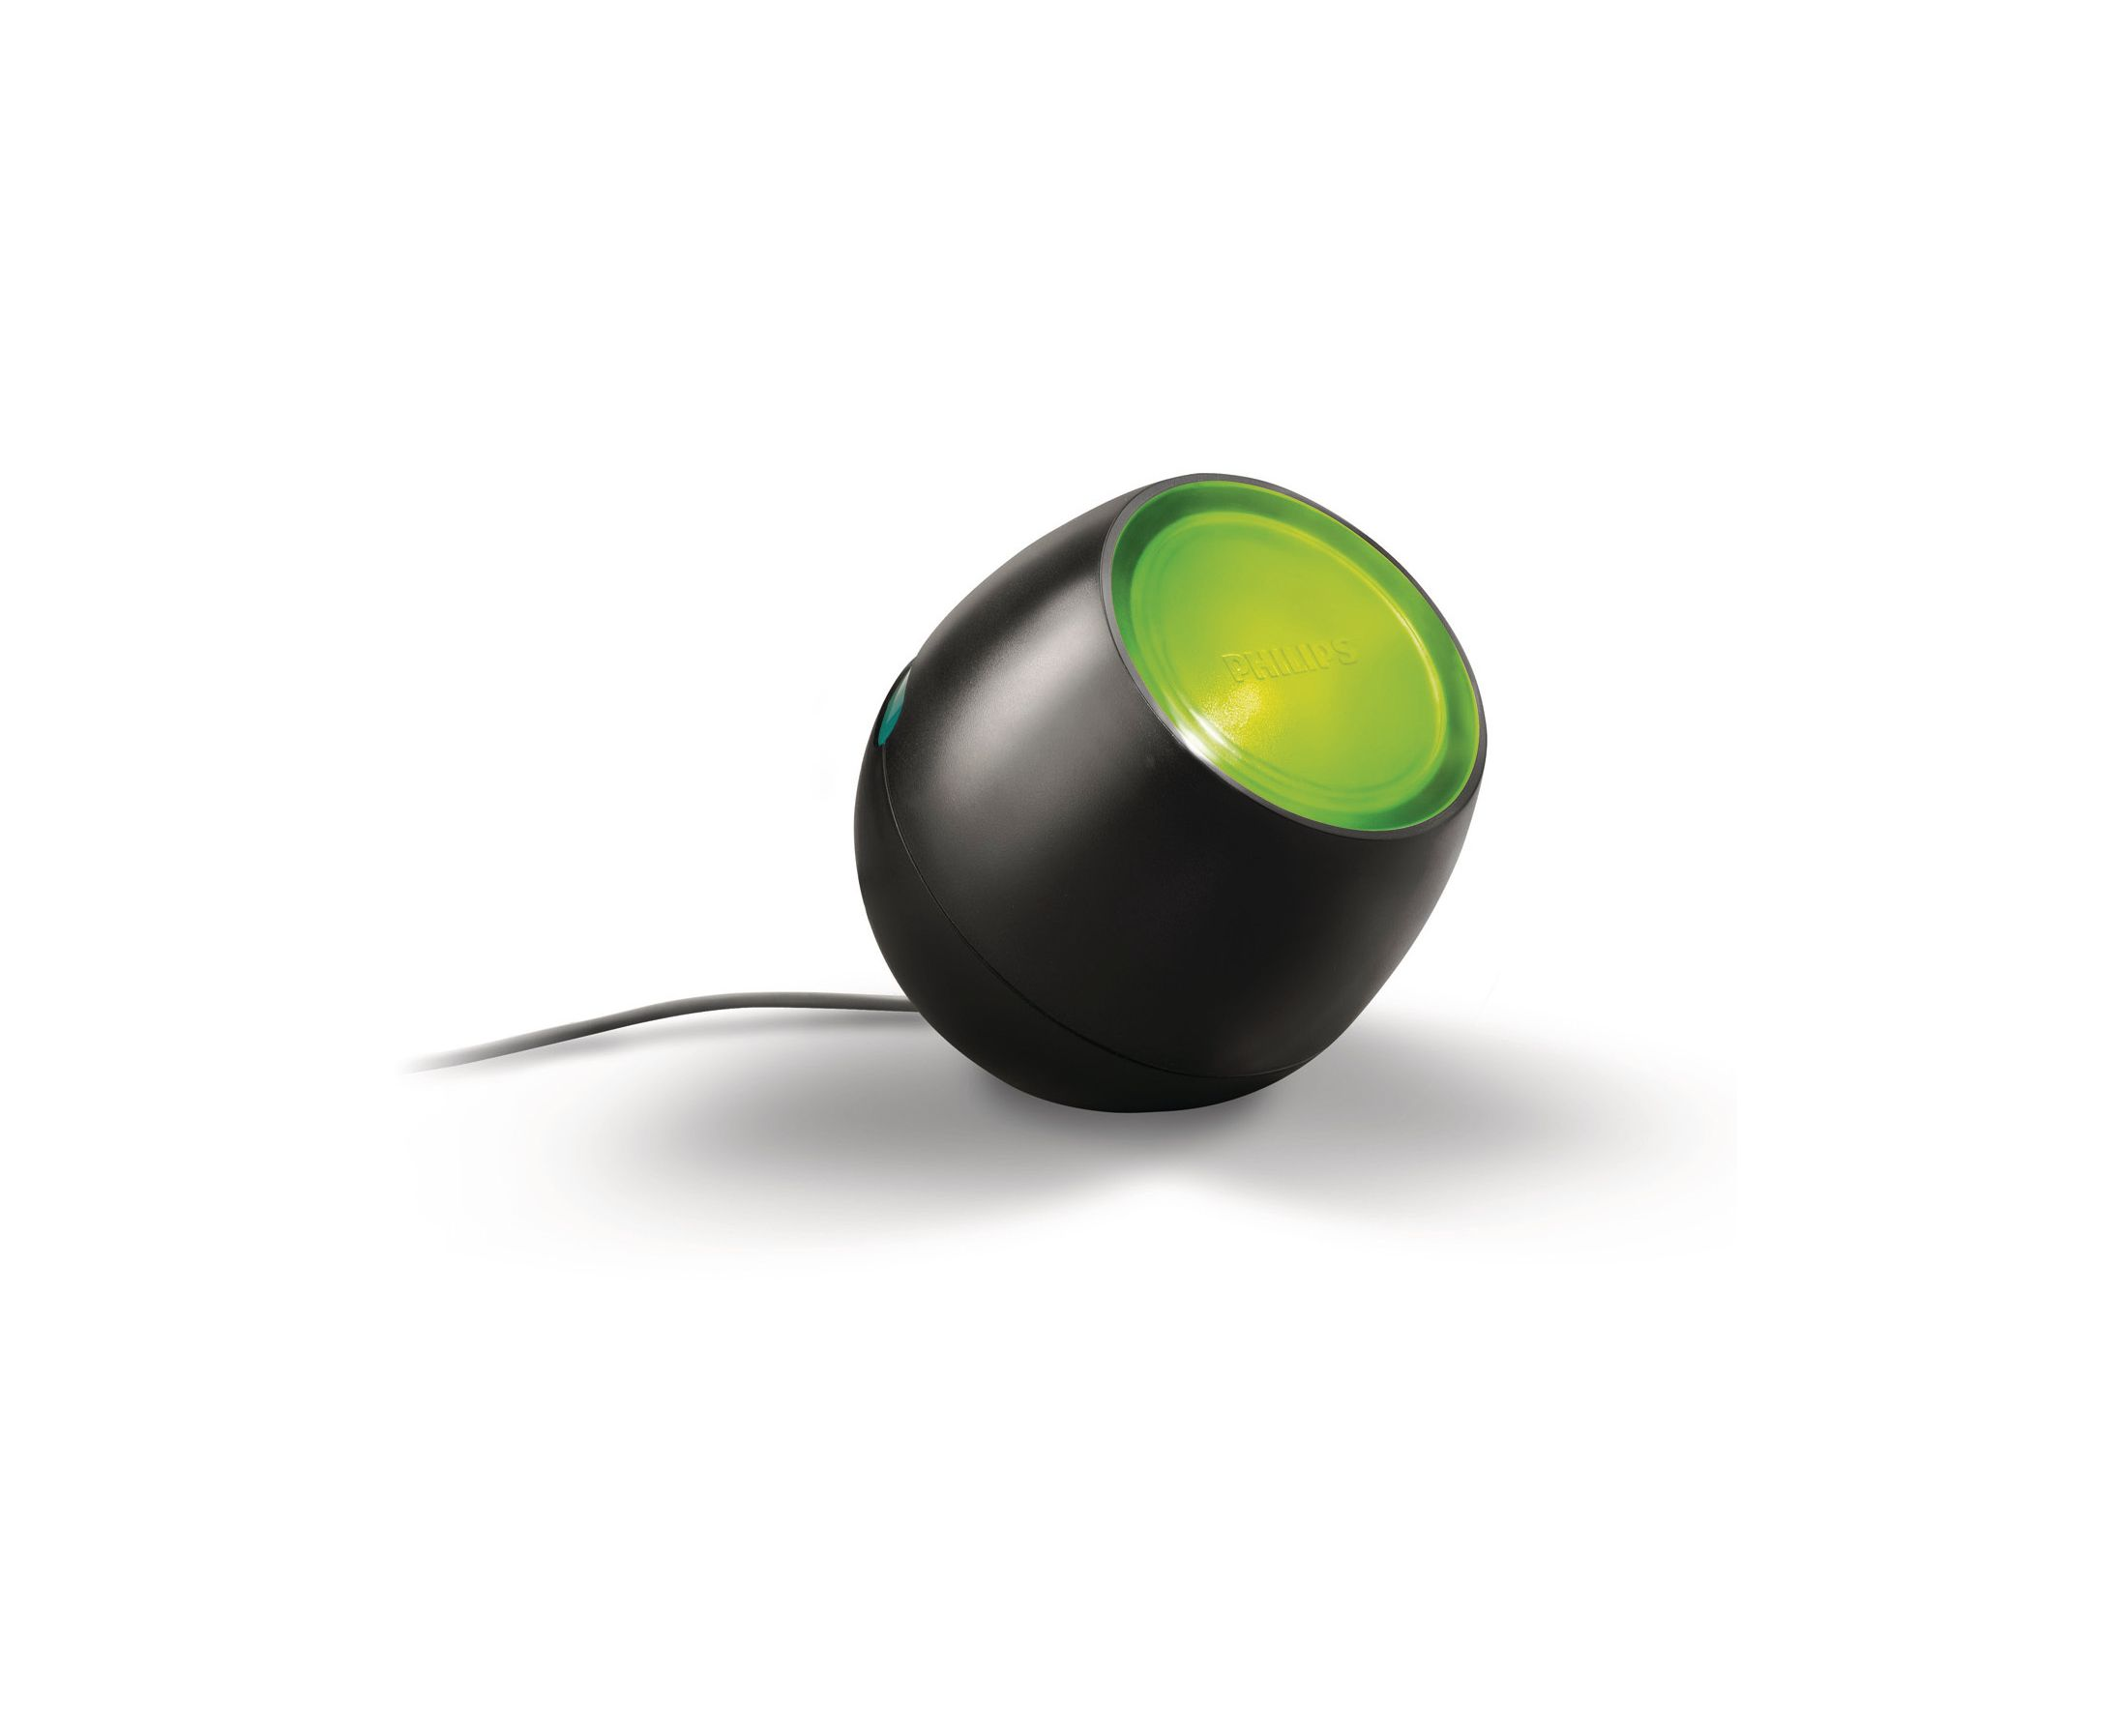 Philips livingcolors micro led colour changing table lamp black philips livingcolors micro led colour changing table lamp black 47w thumbnail 4 parisarafo Image collections